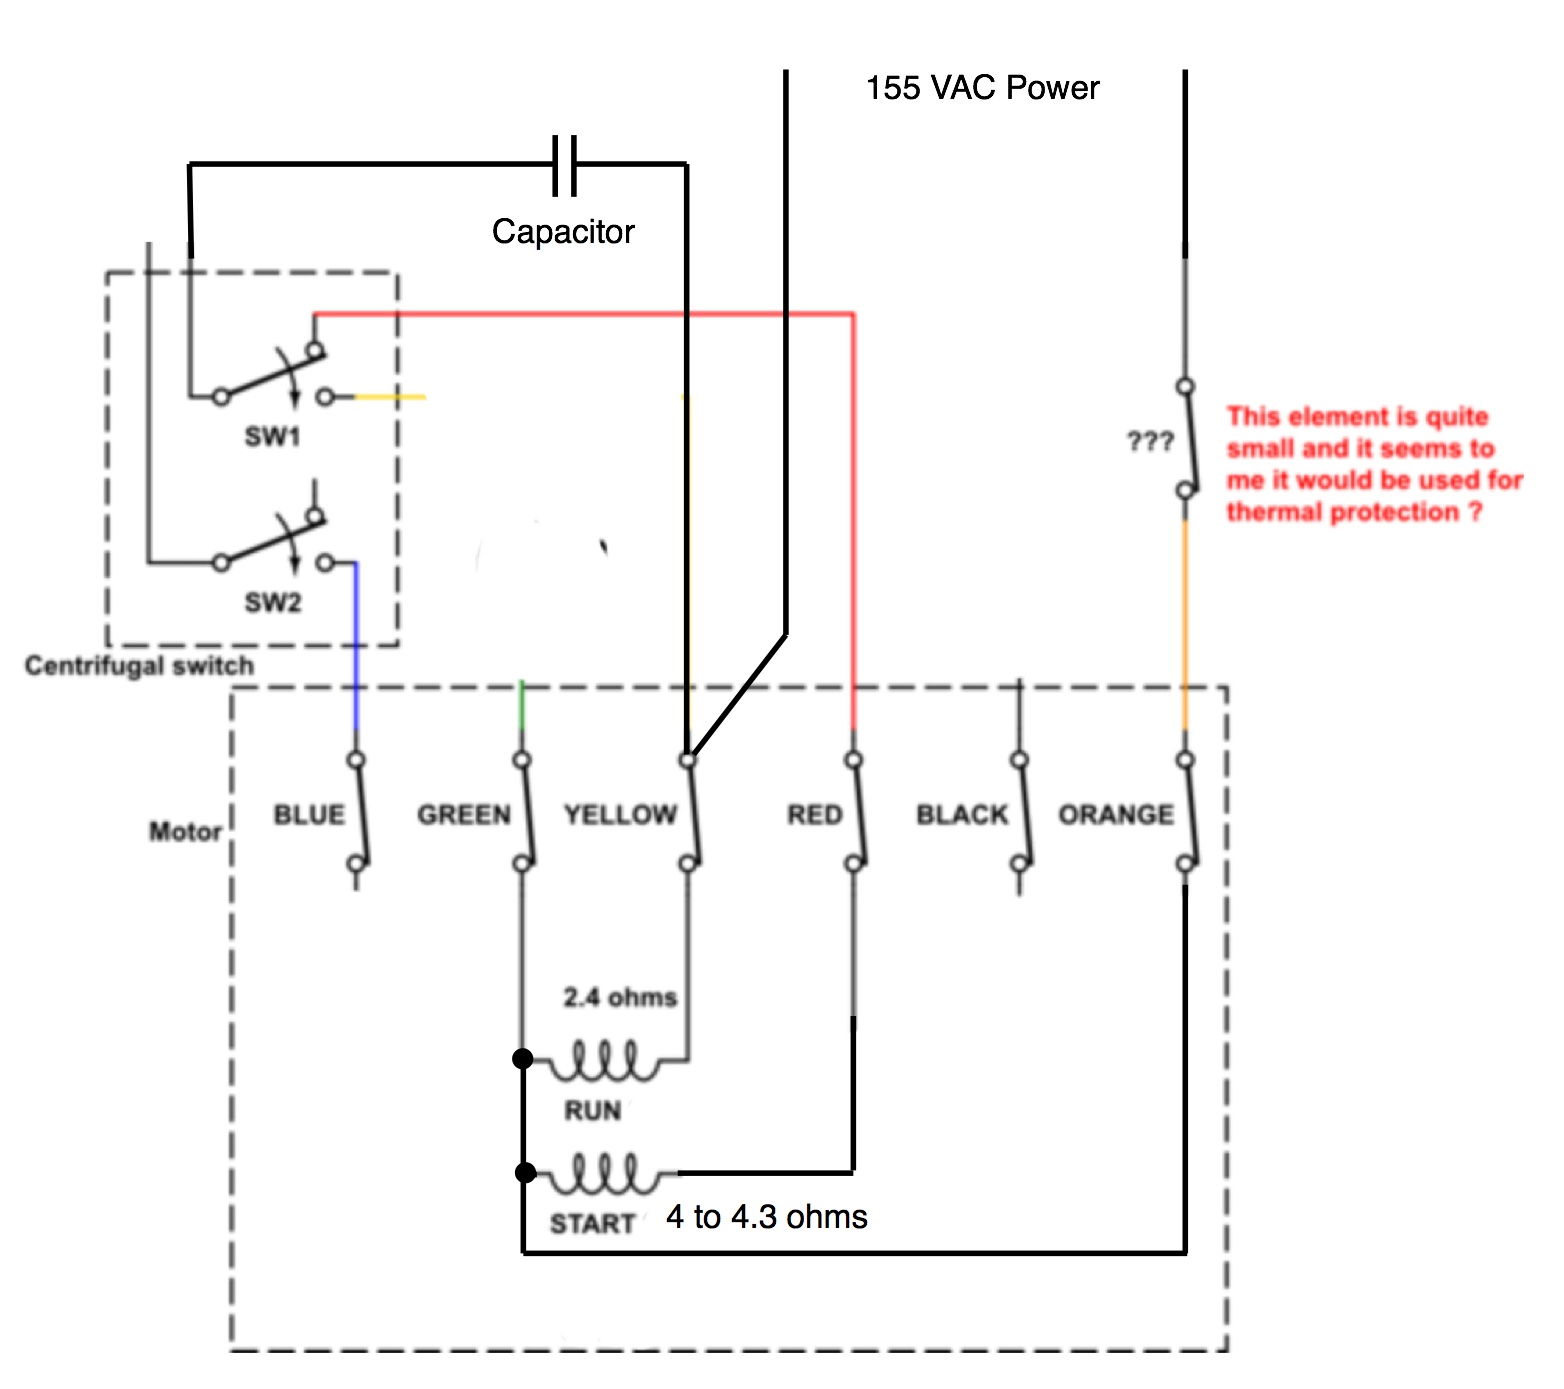 hight resolution of westinghouse ac motor wiring diagram wiring diagram article westinghouse ac motor wiring diagram